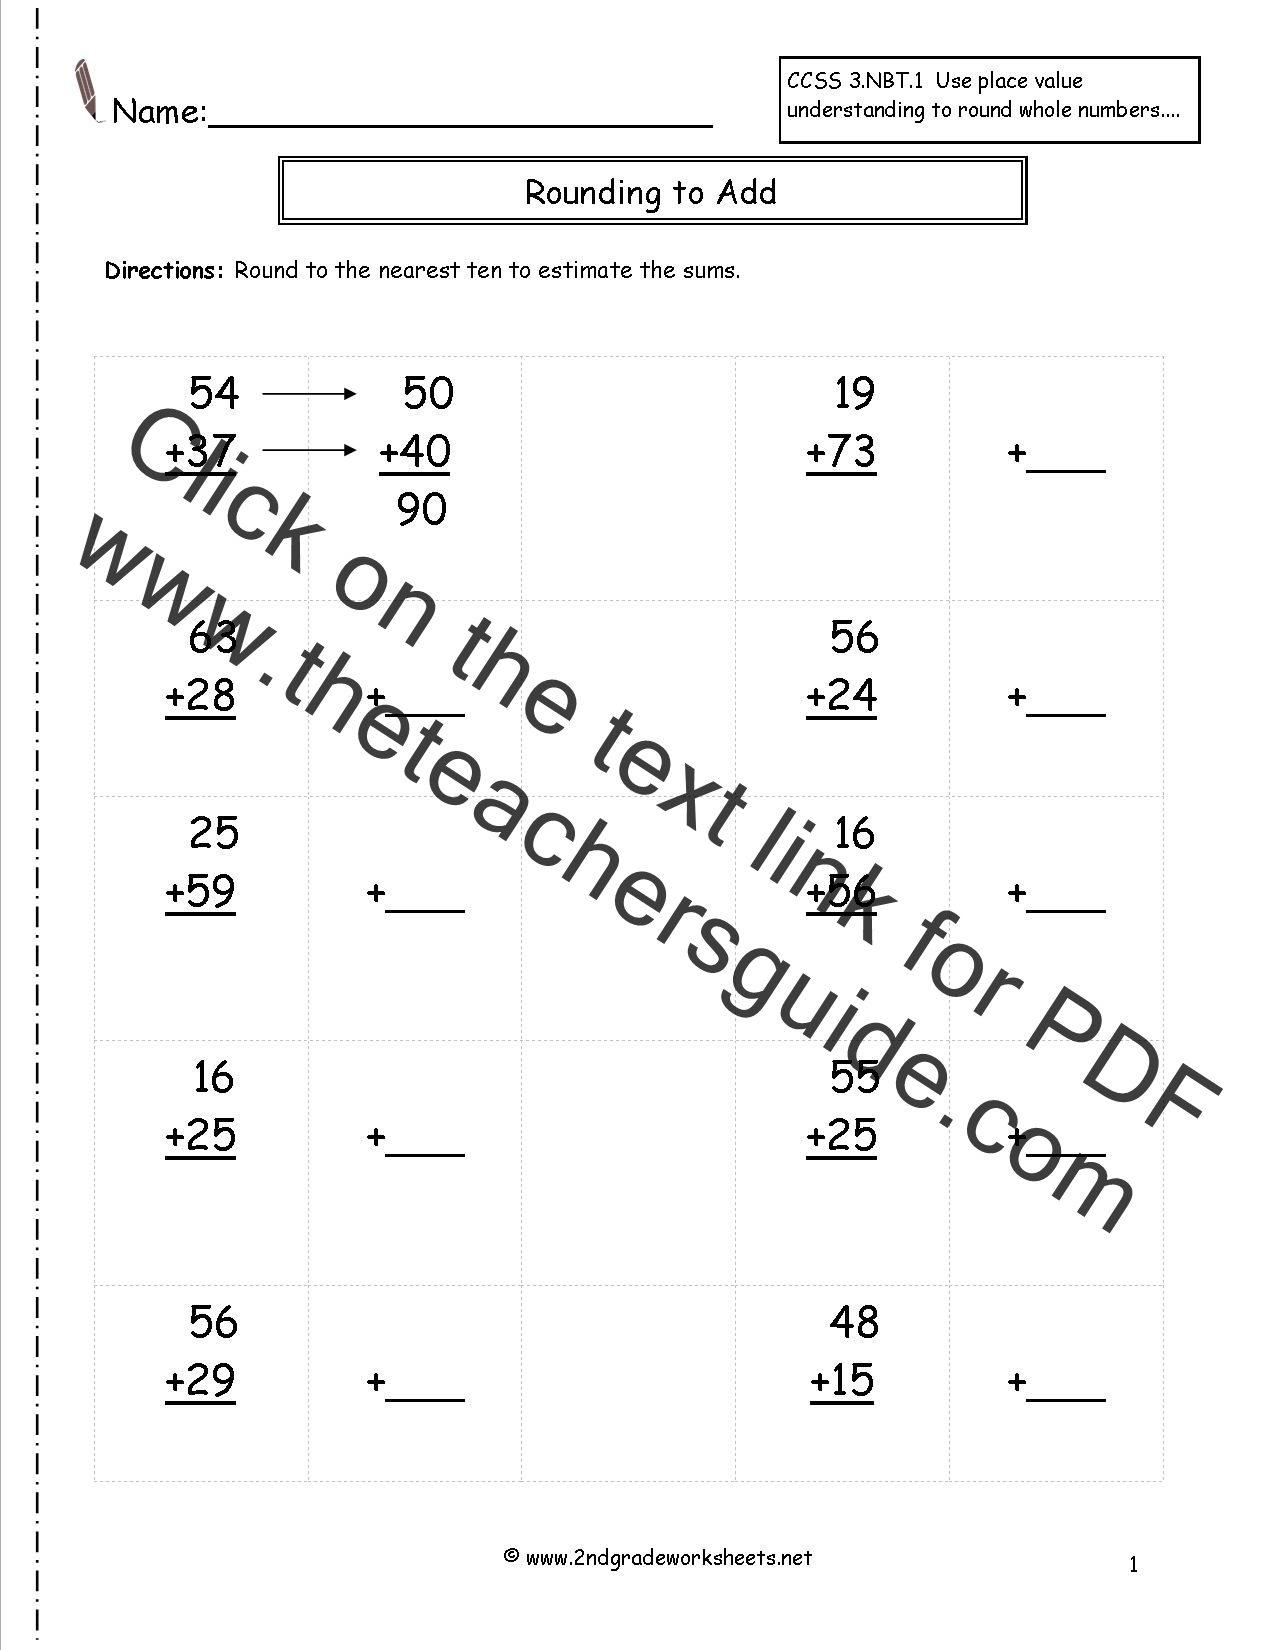 worksheet Estimate Worksheet rounding whole numbers worksheets to estimate the sum worksheet